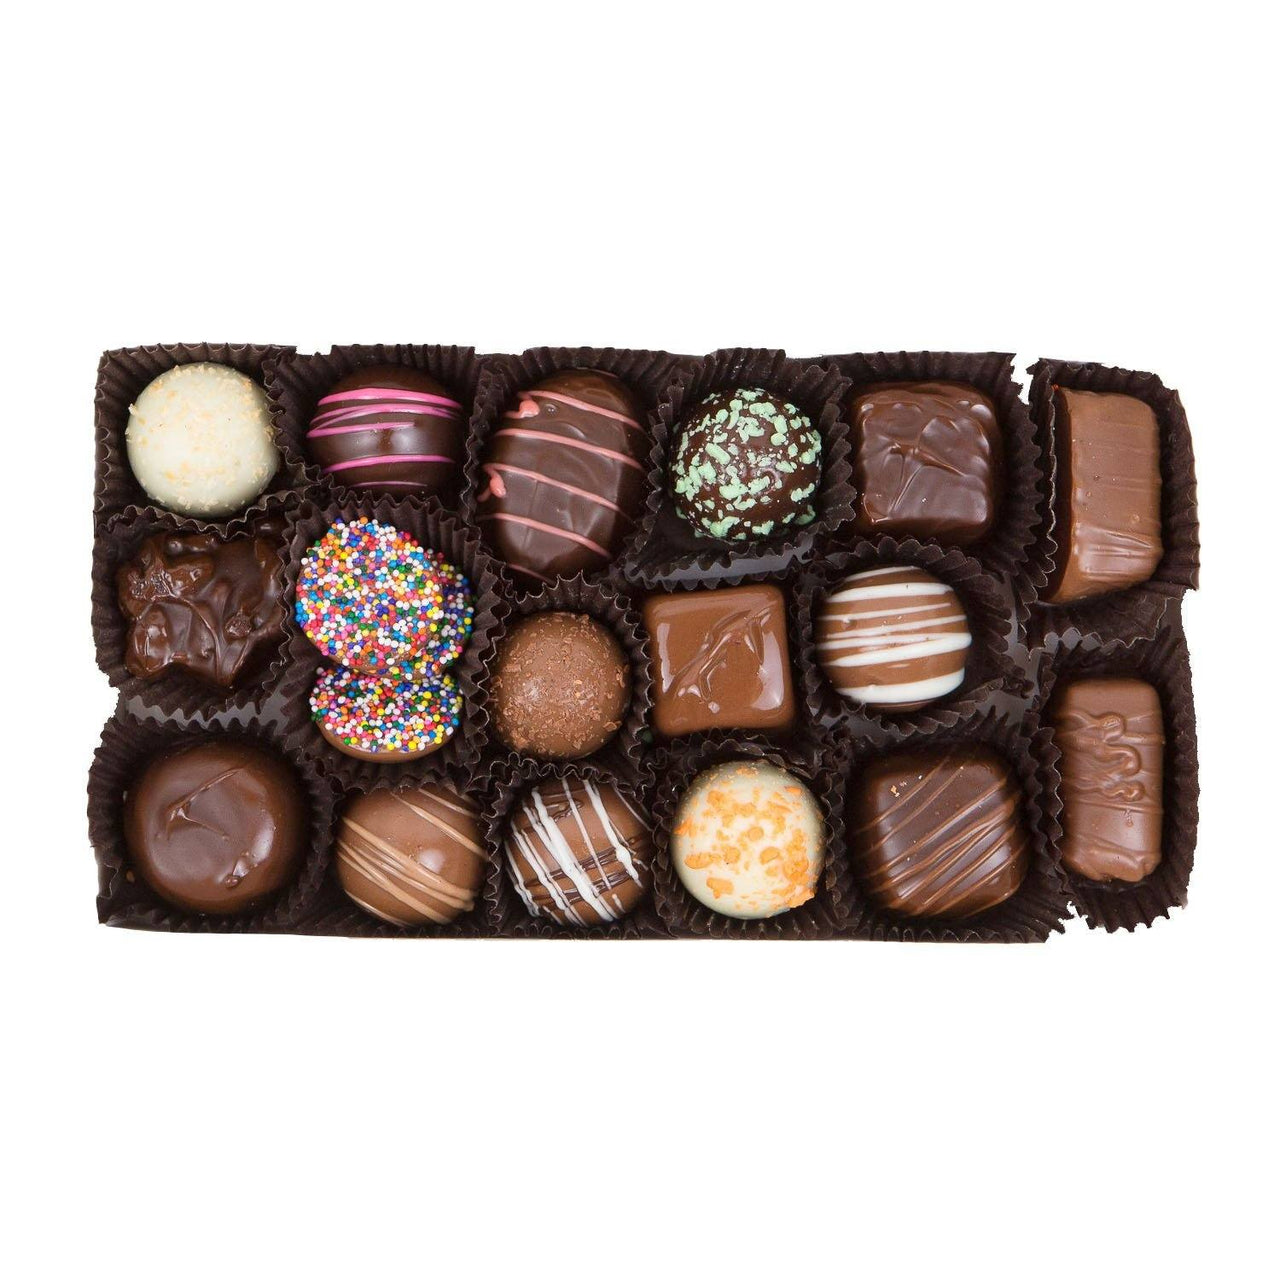 Yankee Swap Ideas - Chocolate Assortment Gift Box - Jackie's Chocolate (4336369500275)